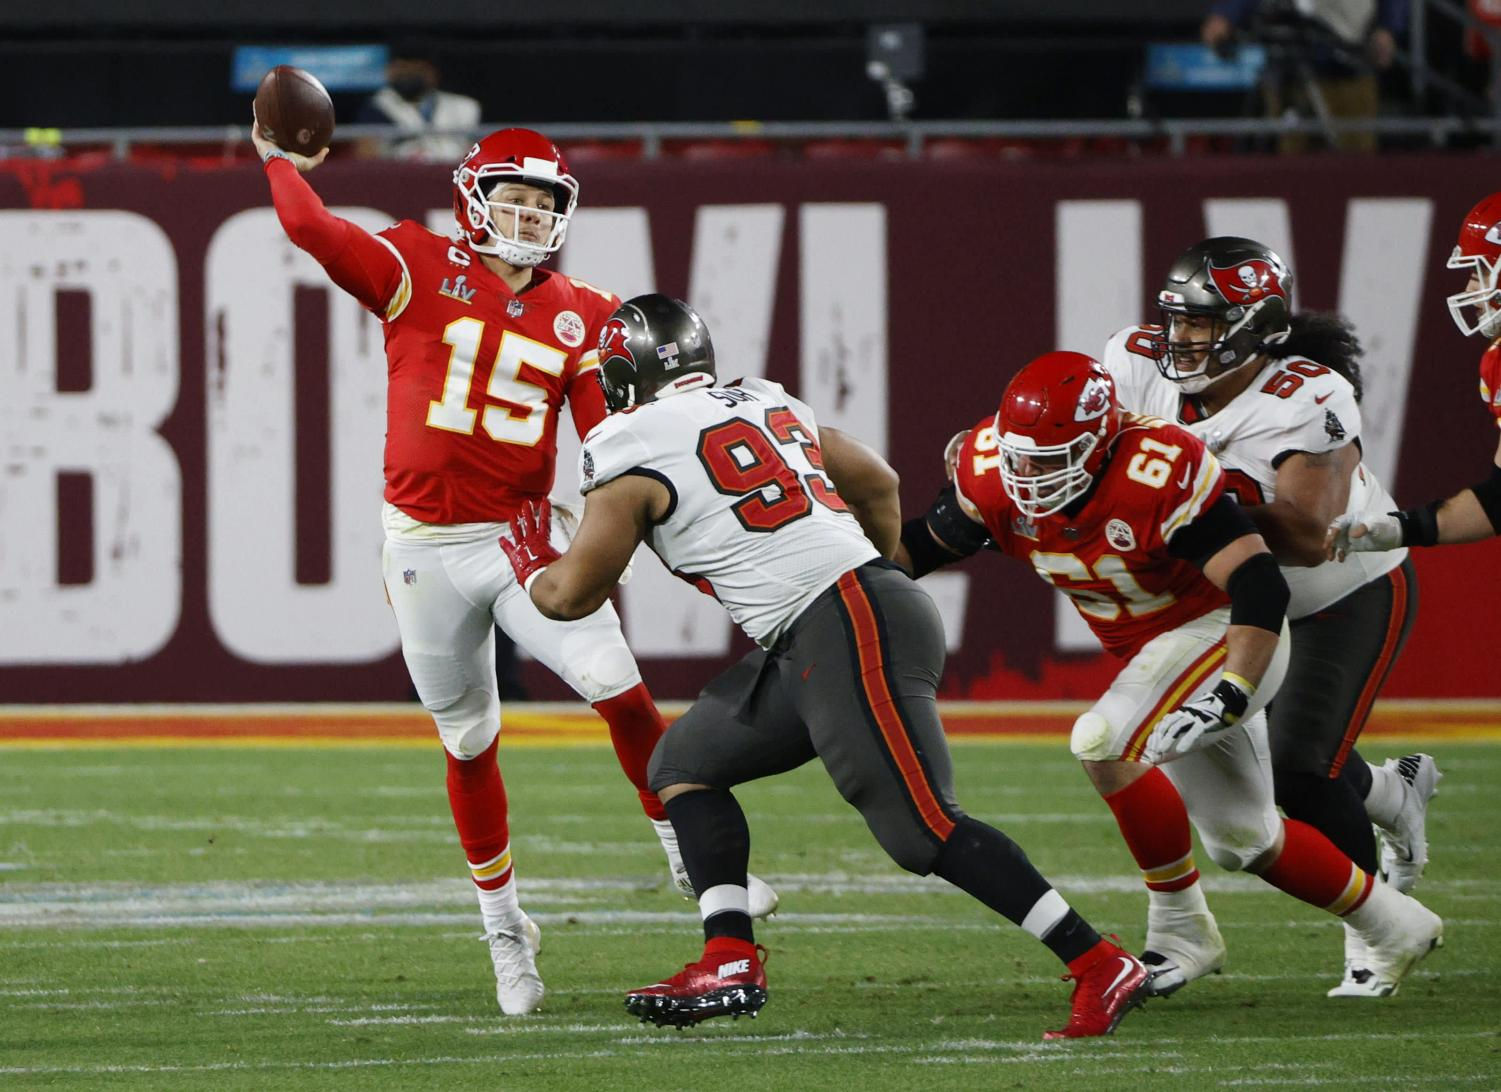 Patrick Mahomes (number 15, Red) getting rushed by Tampa Bays defense.